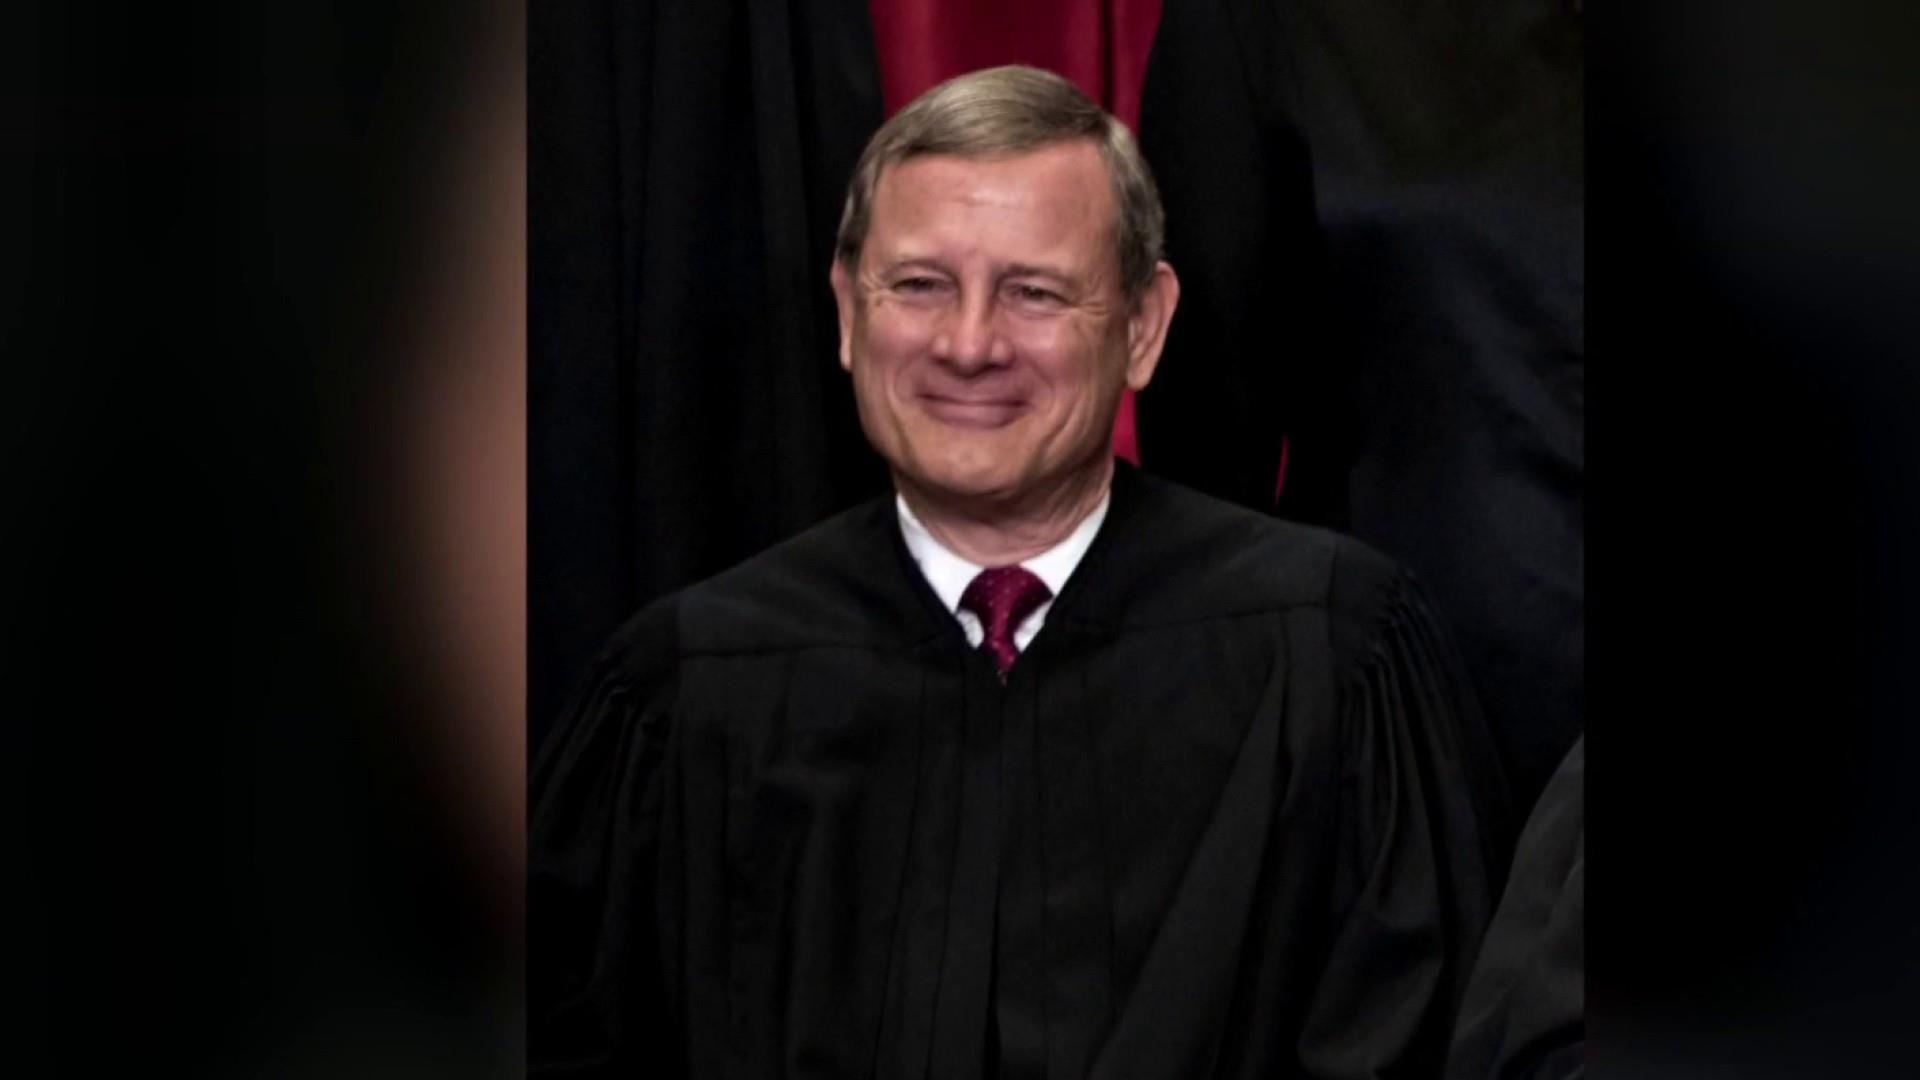 Justice Roberts shows he's closest thing to swing vote